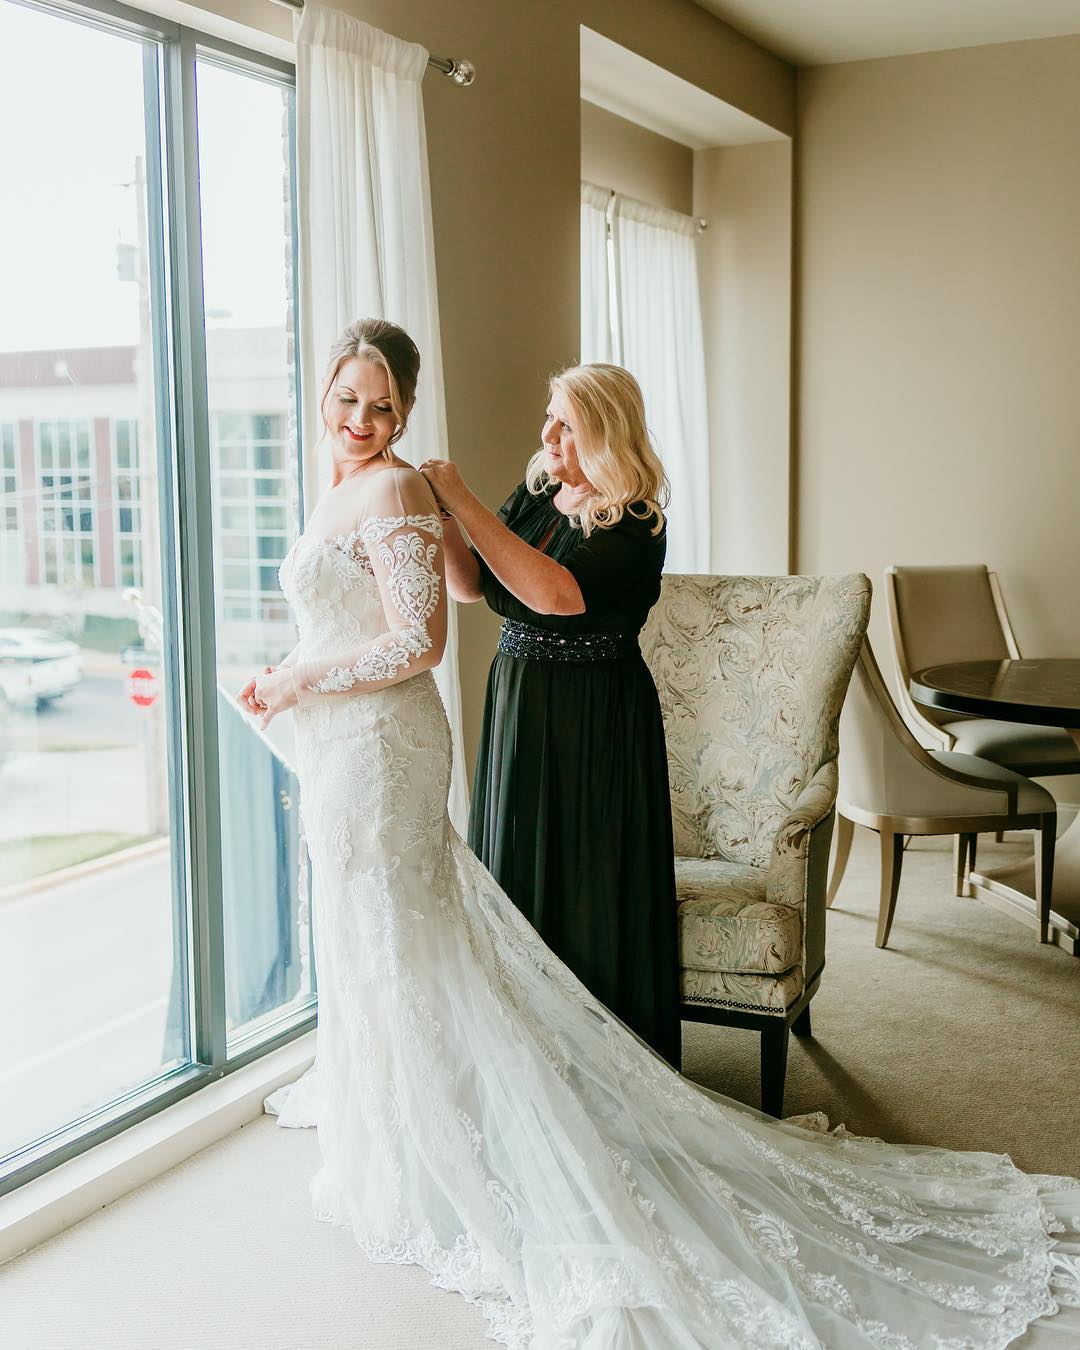 Bride in long sleeve wedding dress while mom secures zipper